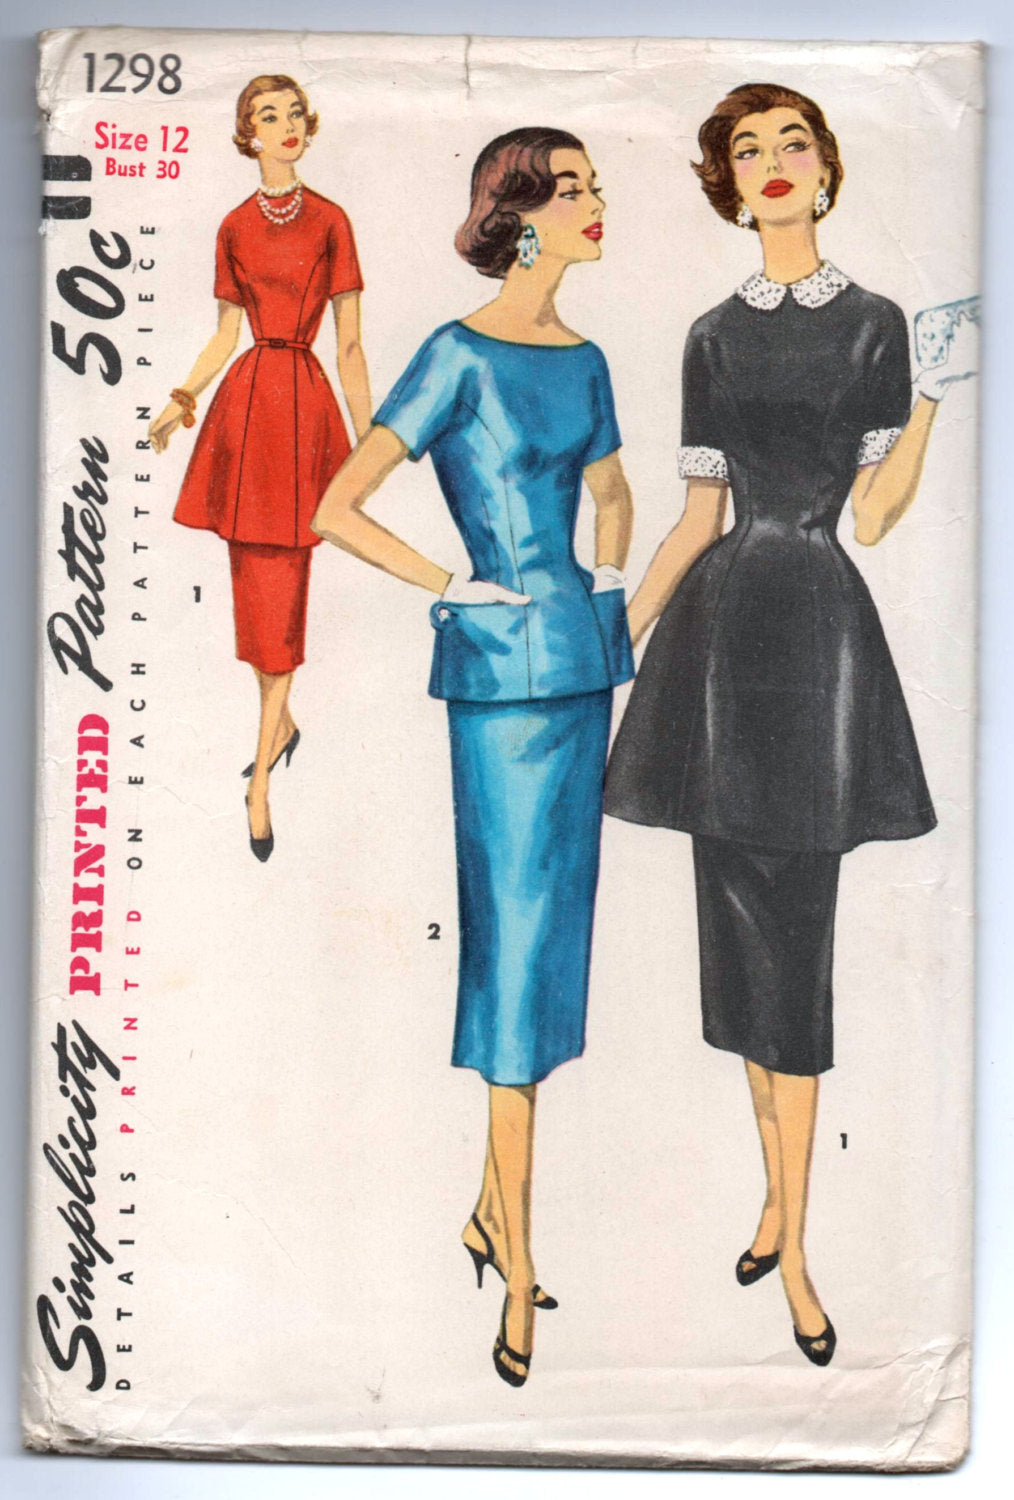 1950's Simplicity Two-Piece Dress with Pencil Skirts, Peplum, and Collar Pattern - UC/FF - Bust 30